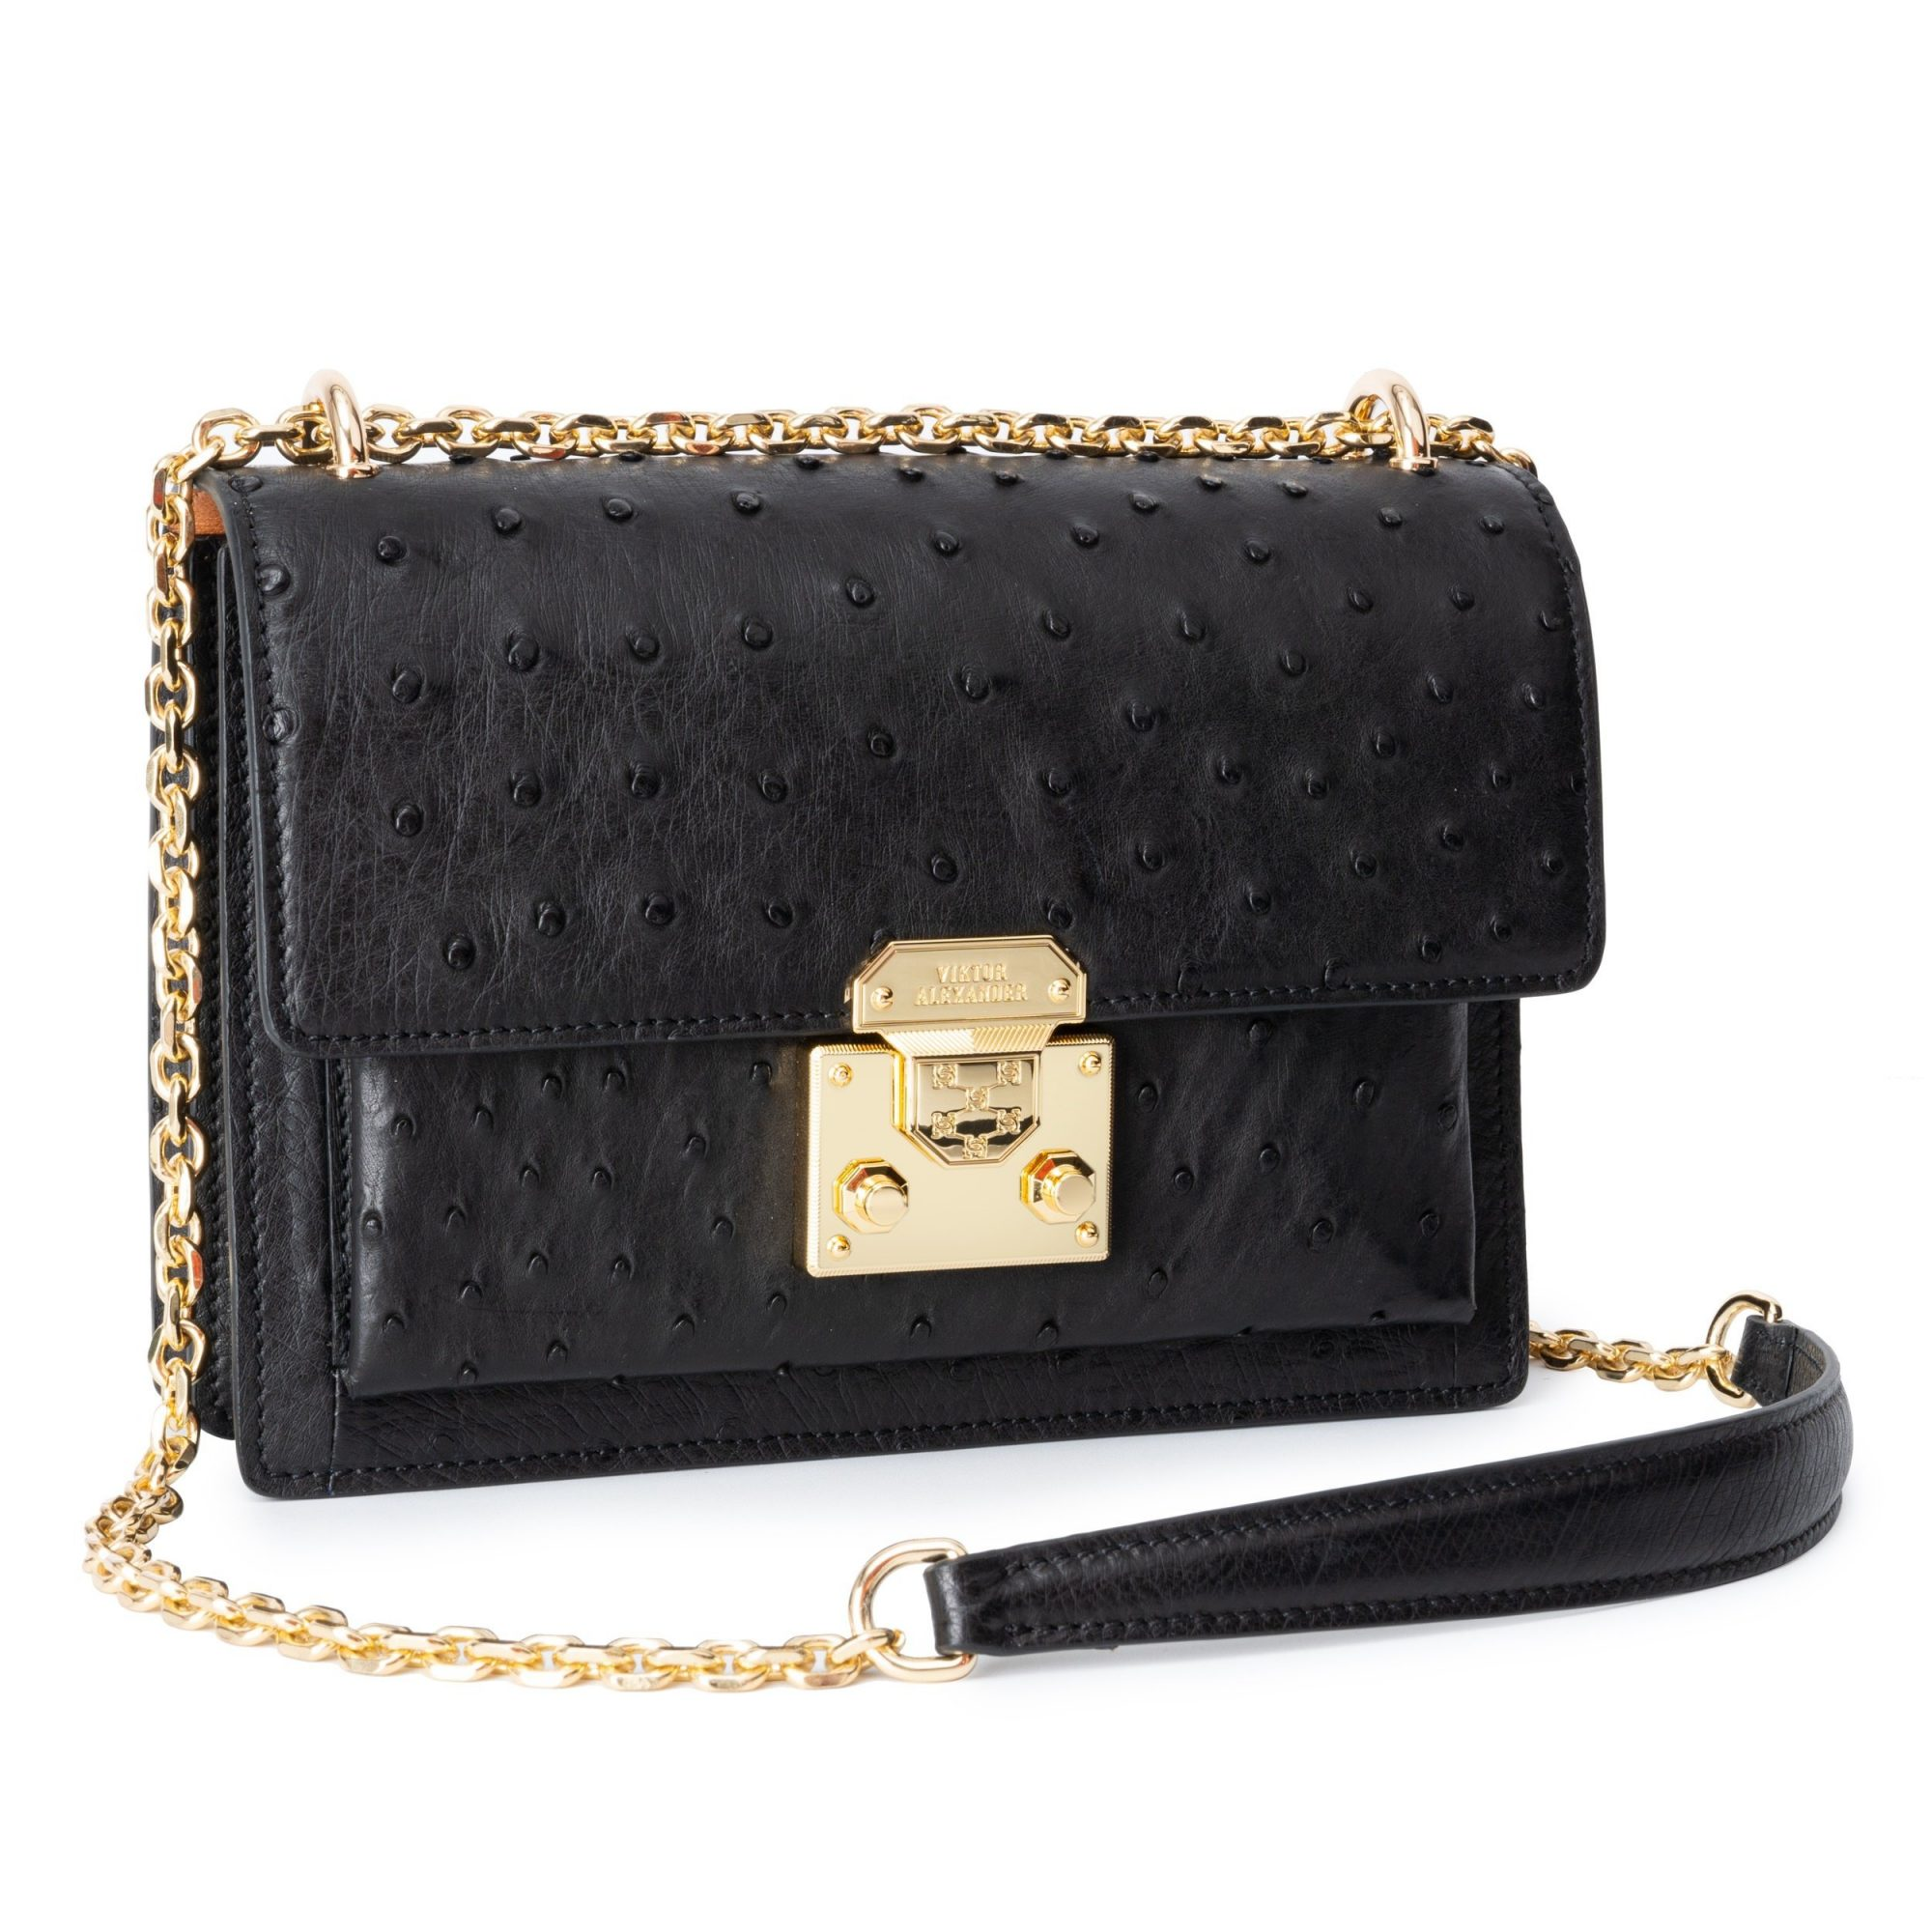 BECCA 23 OSTRICH LEATHER BAG FRONT PROFILE